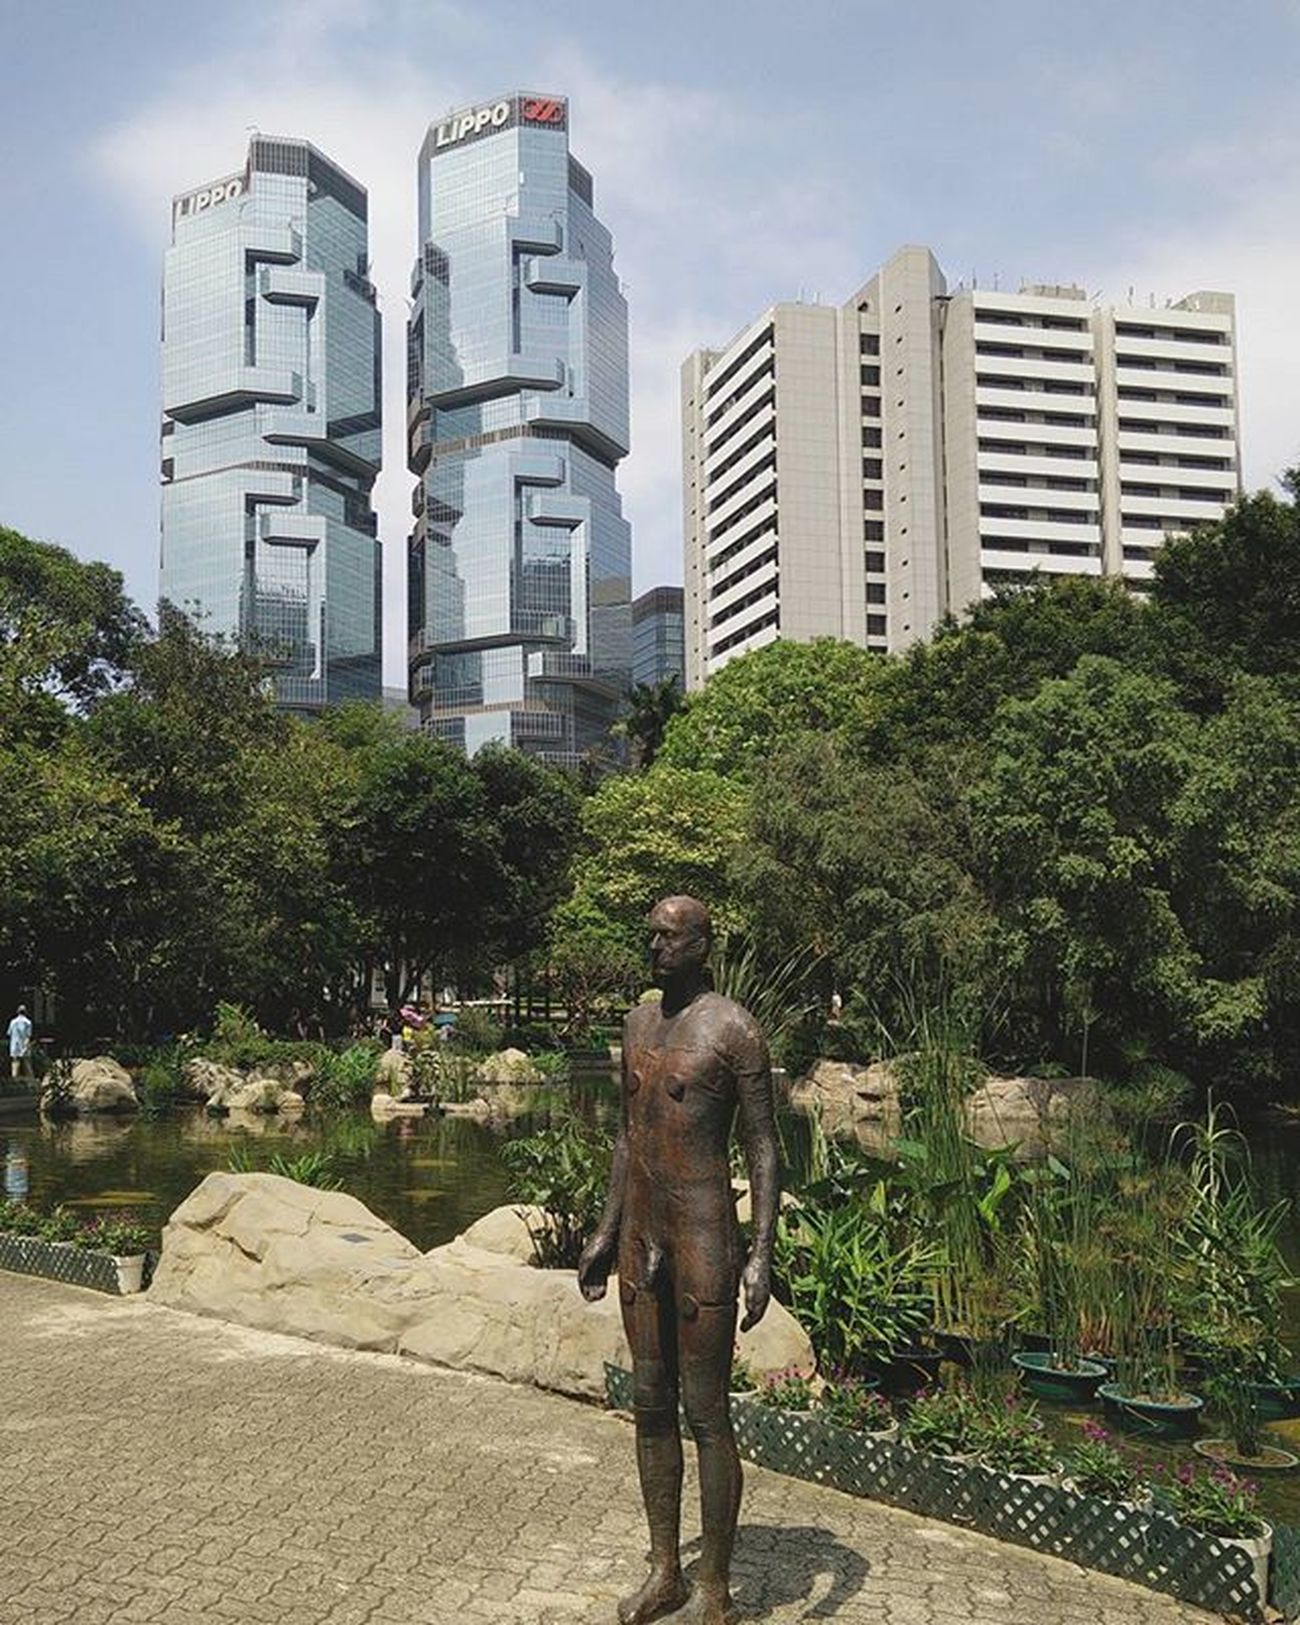 "💀🌝🌚 ""What on earth did I DRINK last night?"" ------ ------ ------ Statue Sculpture Eventhorizon AntonyGormley Buildings Greenery Hongkongpark Central Hkig Instameethk Oneplusone Art Photography Discoverhongkong EyeEm Urbanexploration"